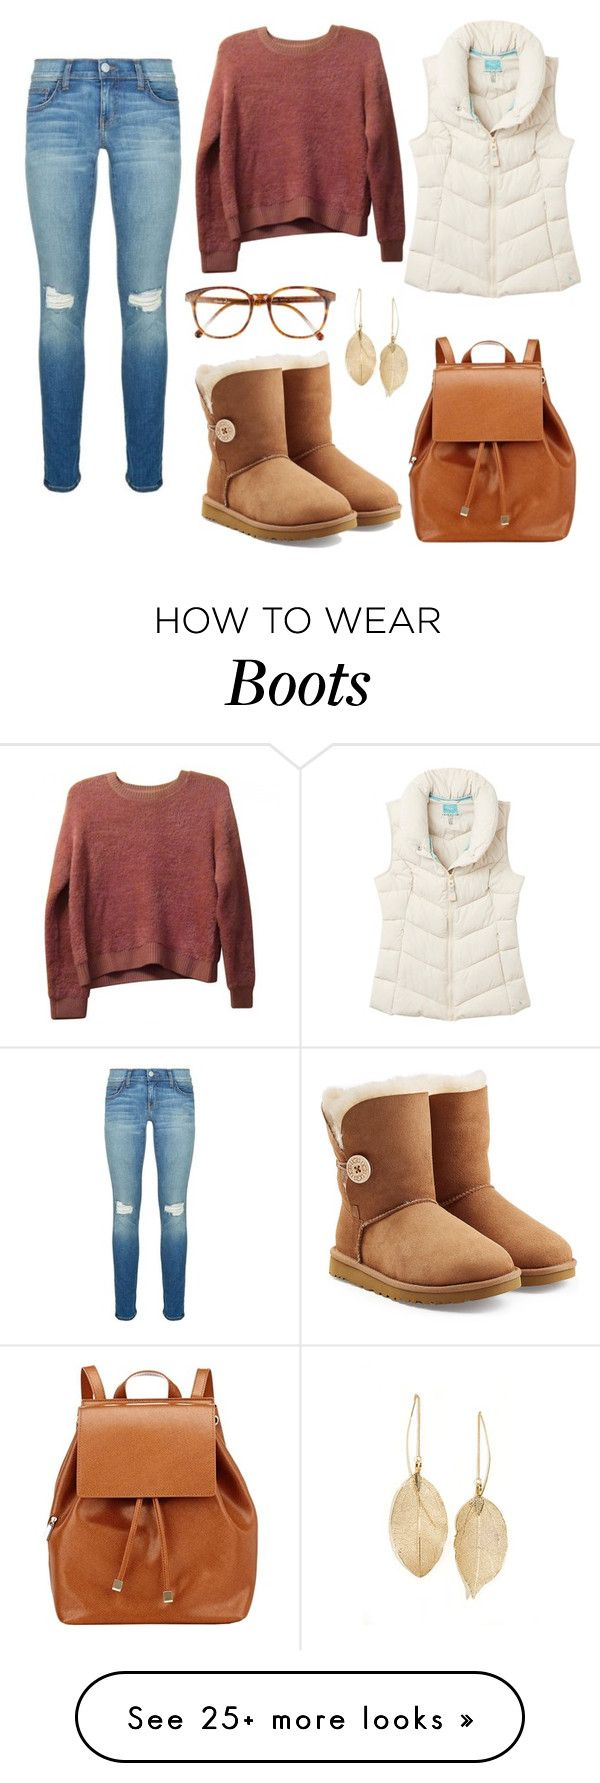 """""""ugg boots"""" by shopaholic02 on Polyvore featuring Rebecca Minkoff, Barneys New York, UGG Australia, Steven Alan, Joules, Topshop and Lulu*s"""